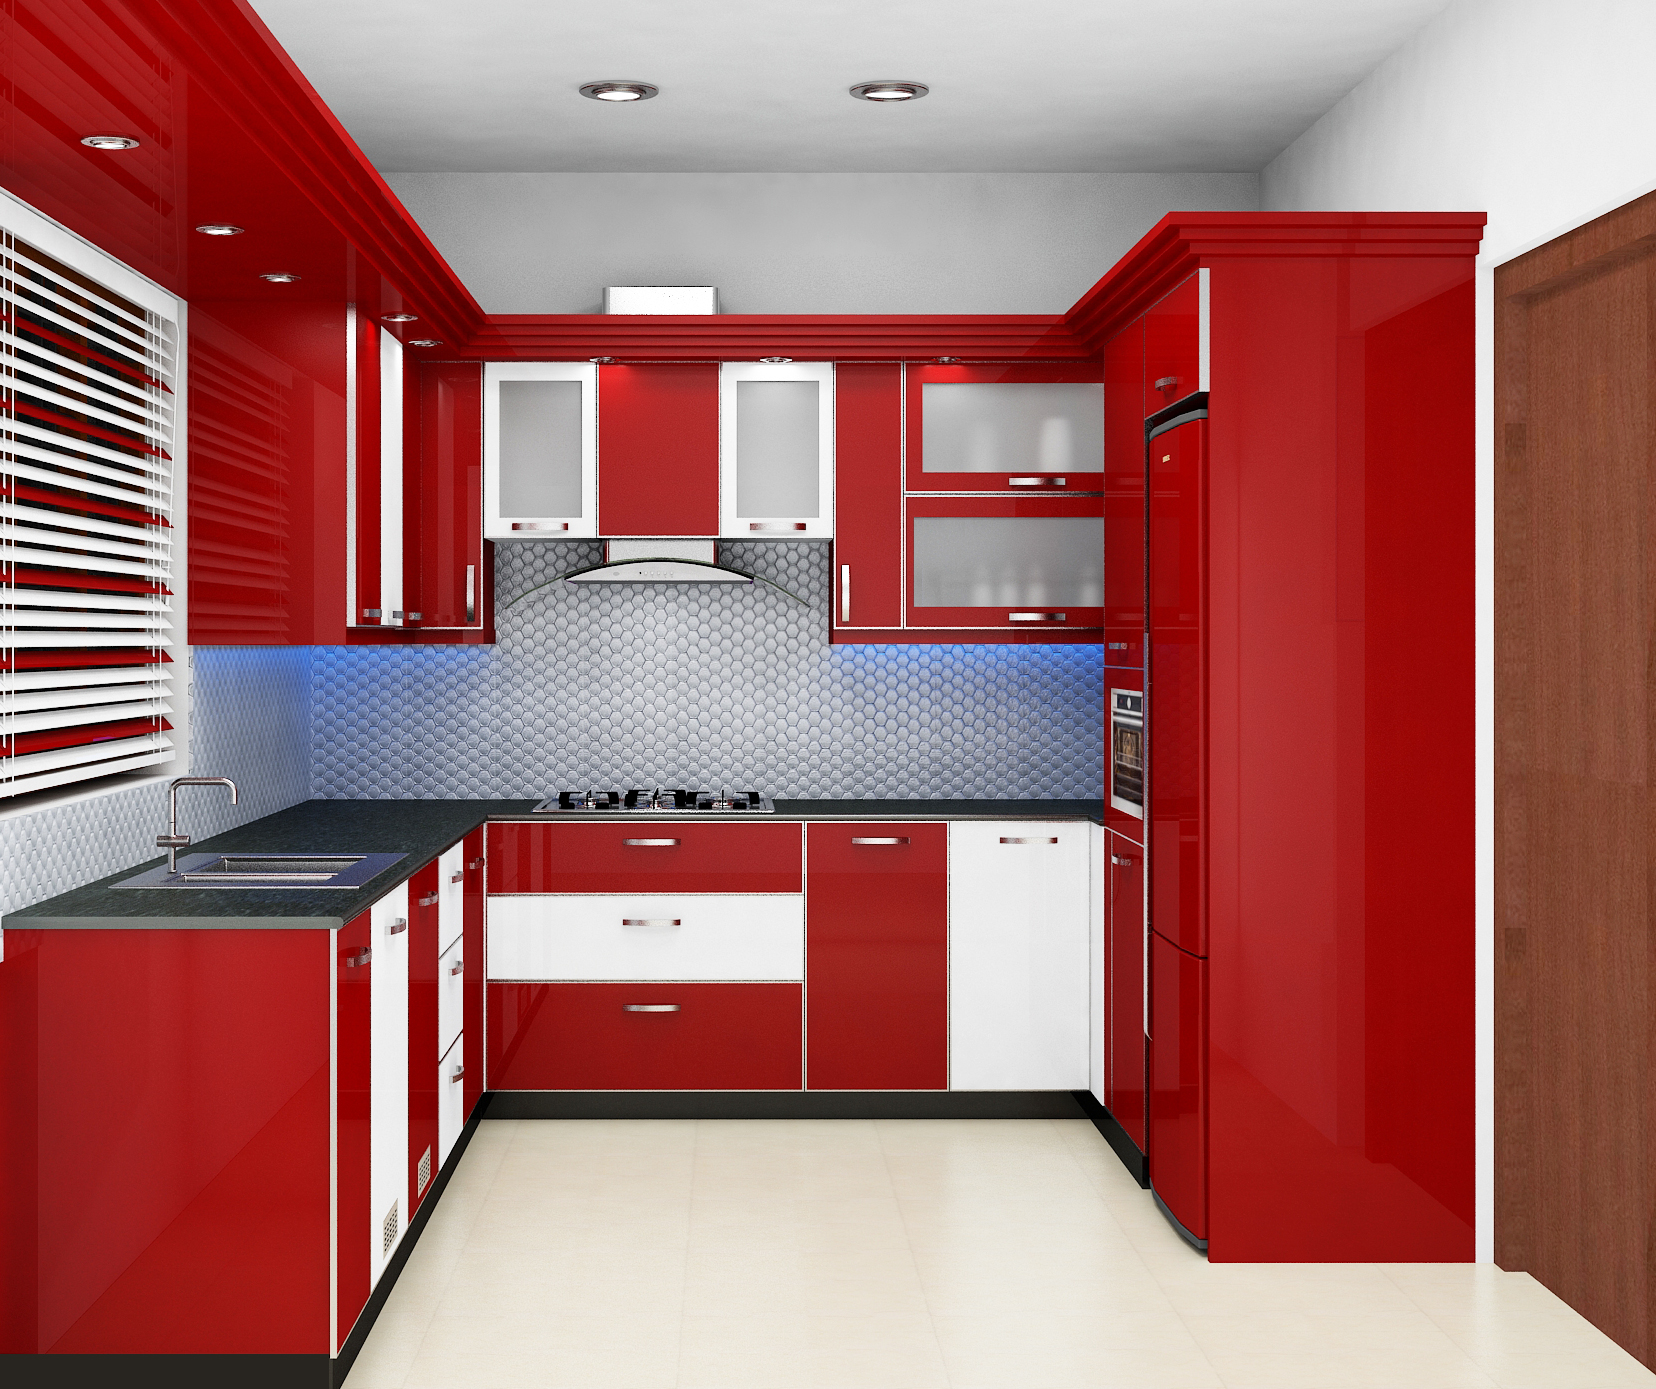 Homes Interior Designs Exemplary And Amazing Modular Kitchen Home Interior Design